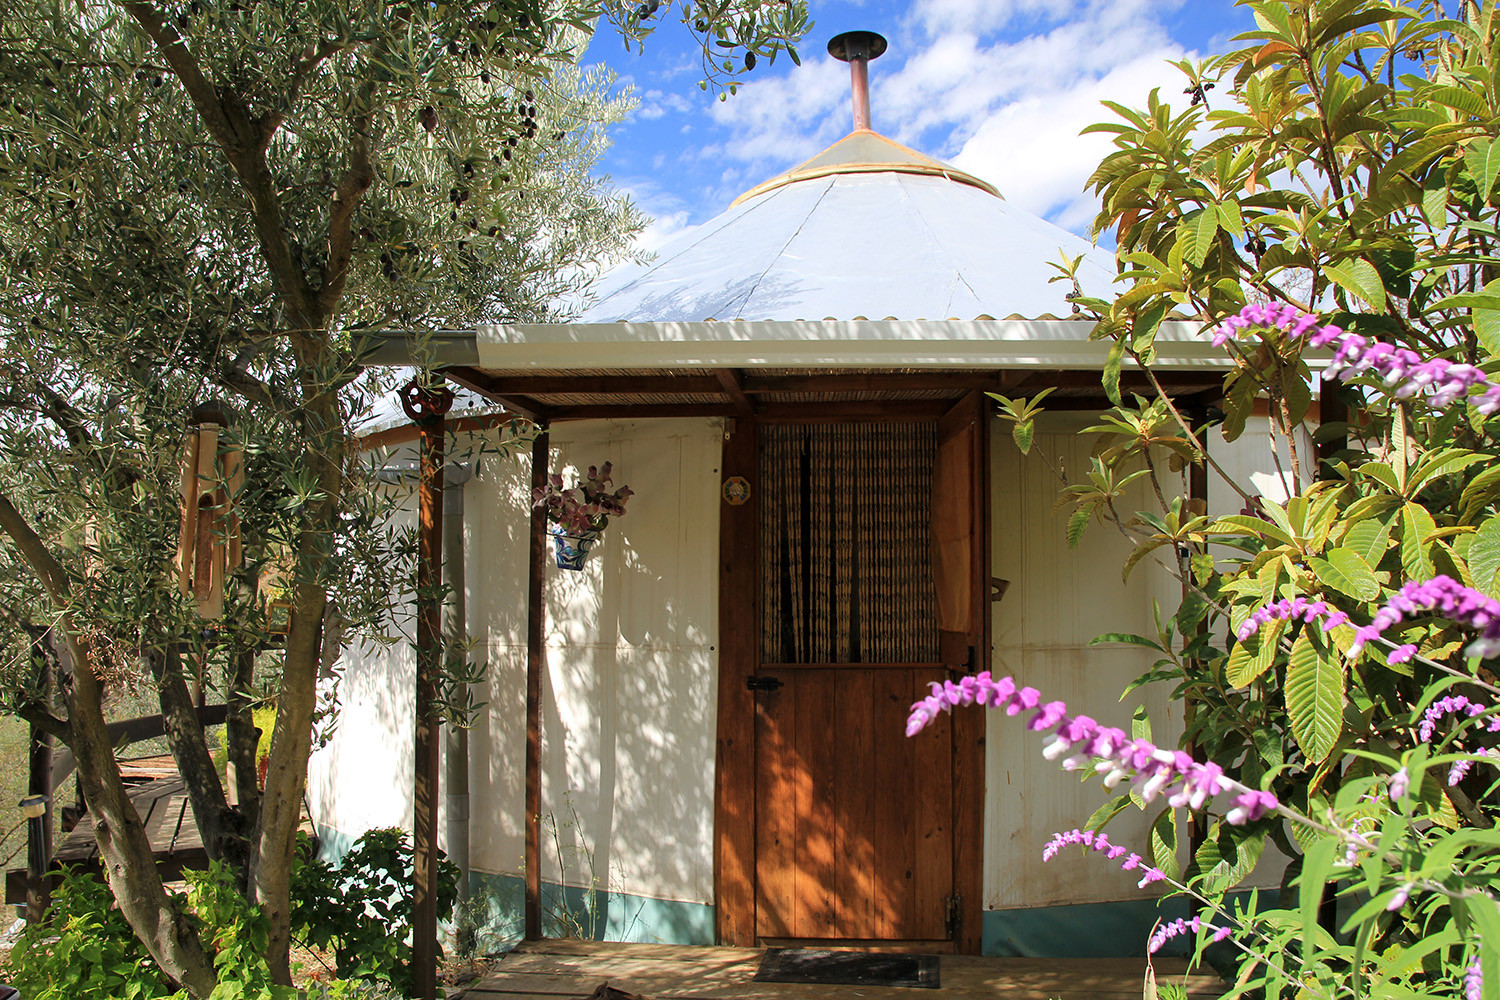 The front of the large yurt